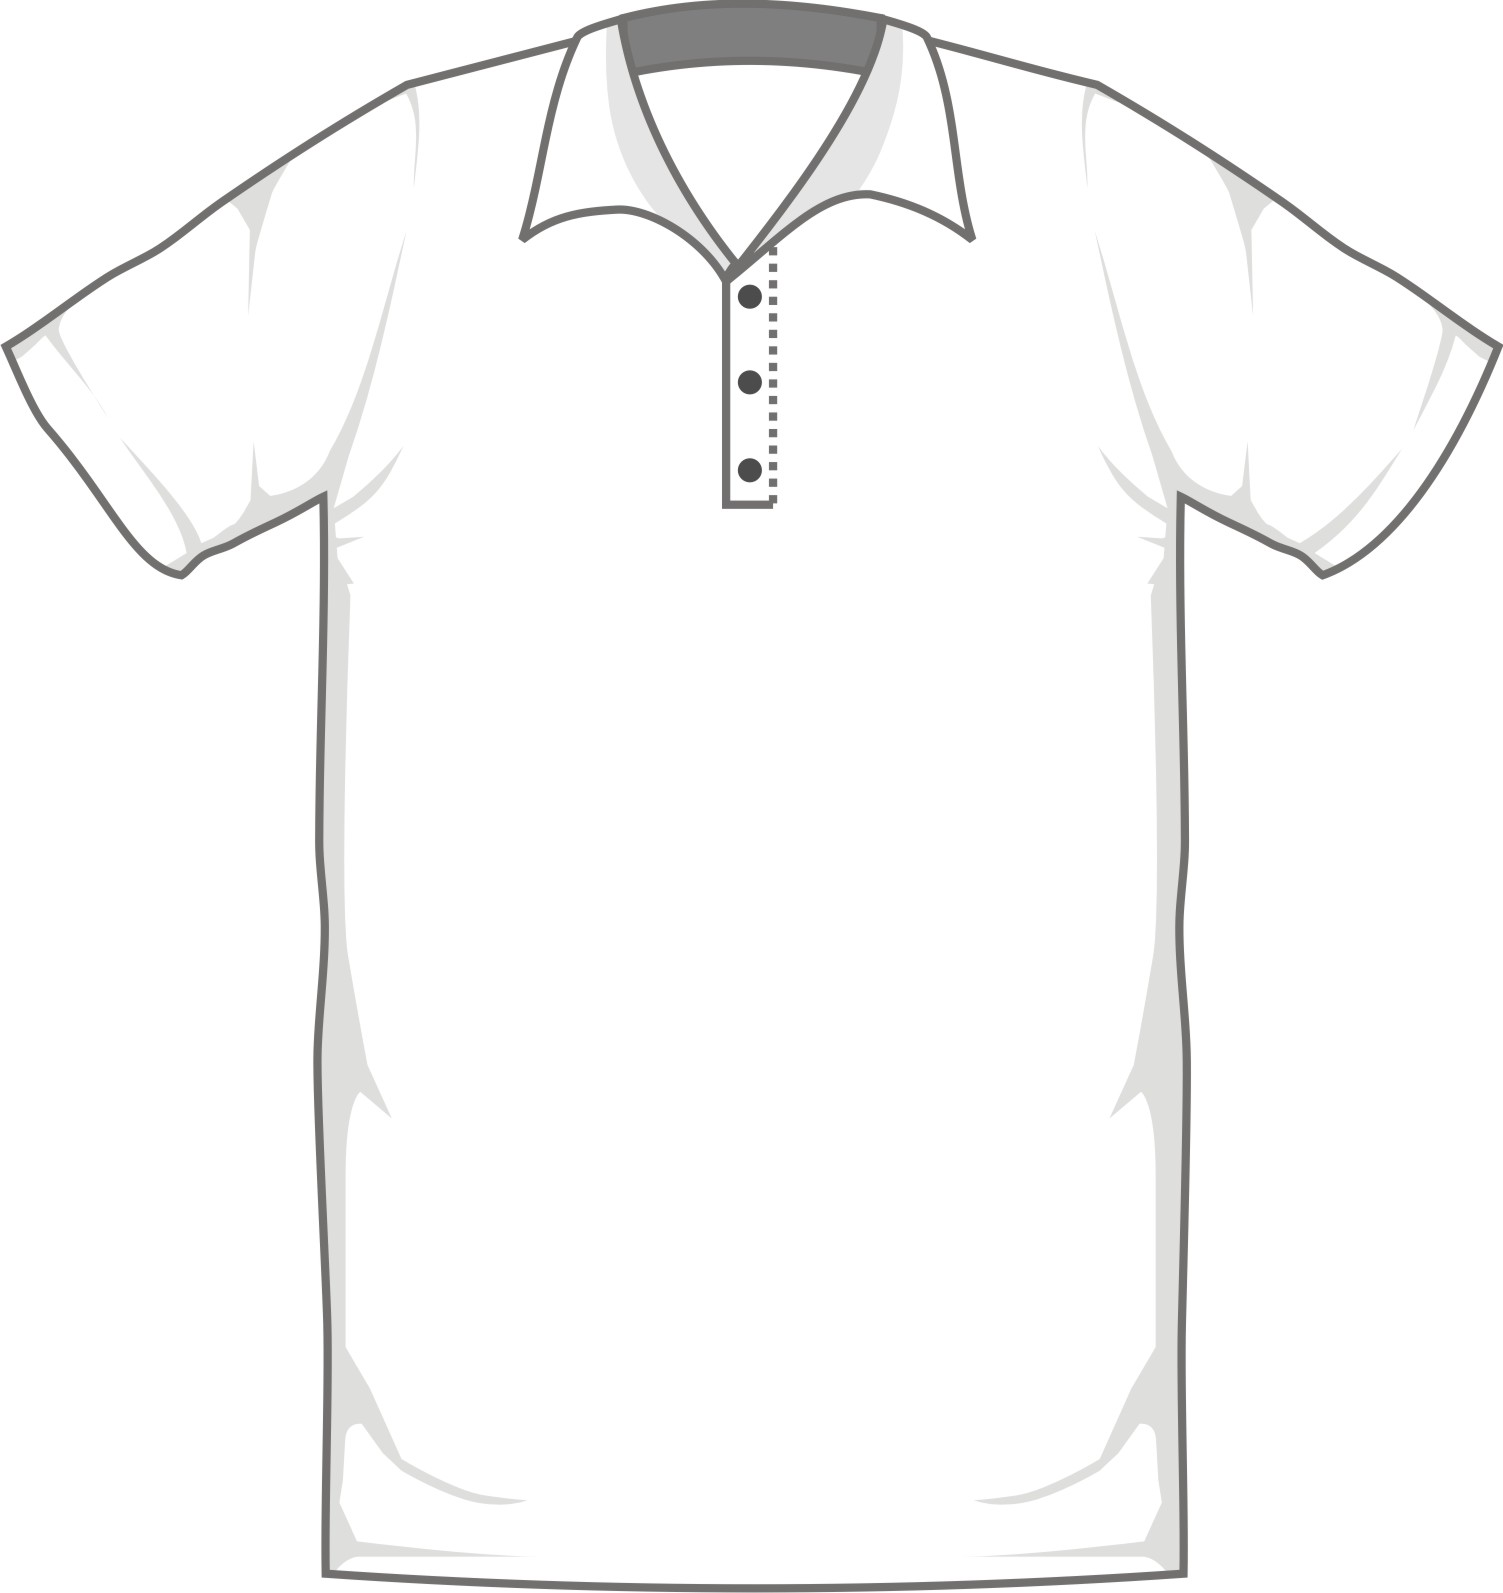 guruntools polo shirt templates